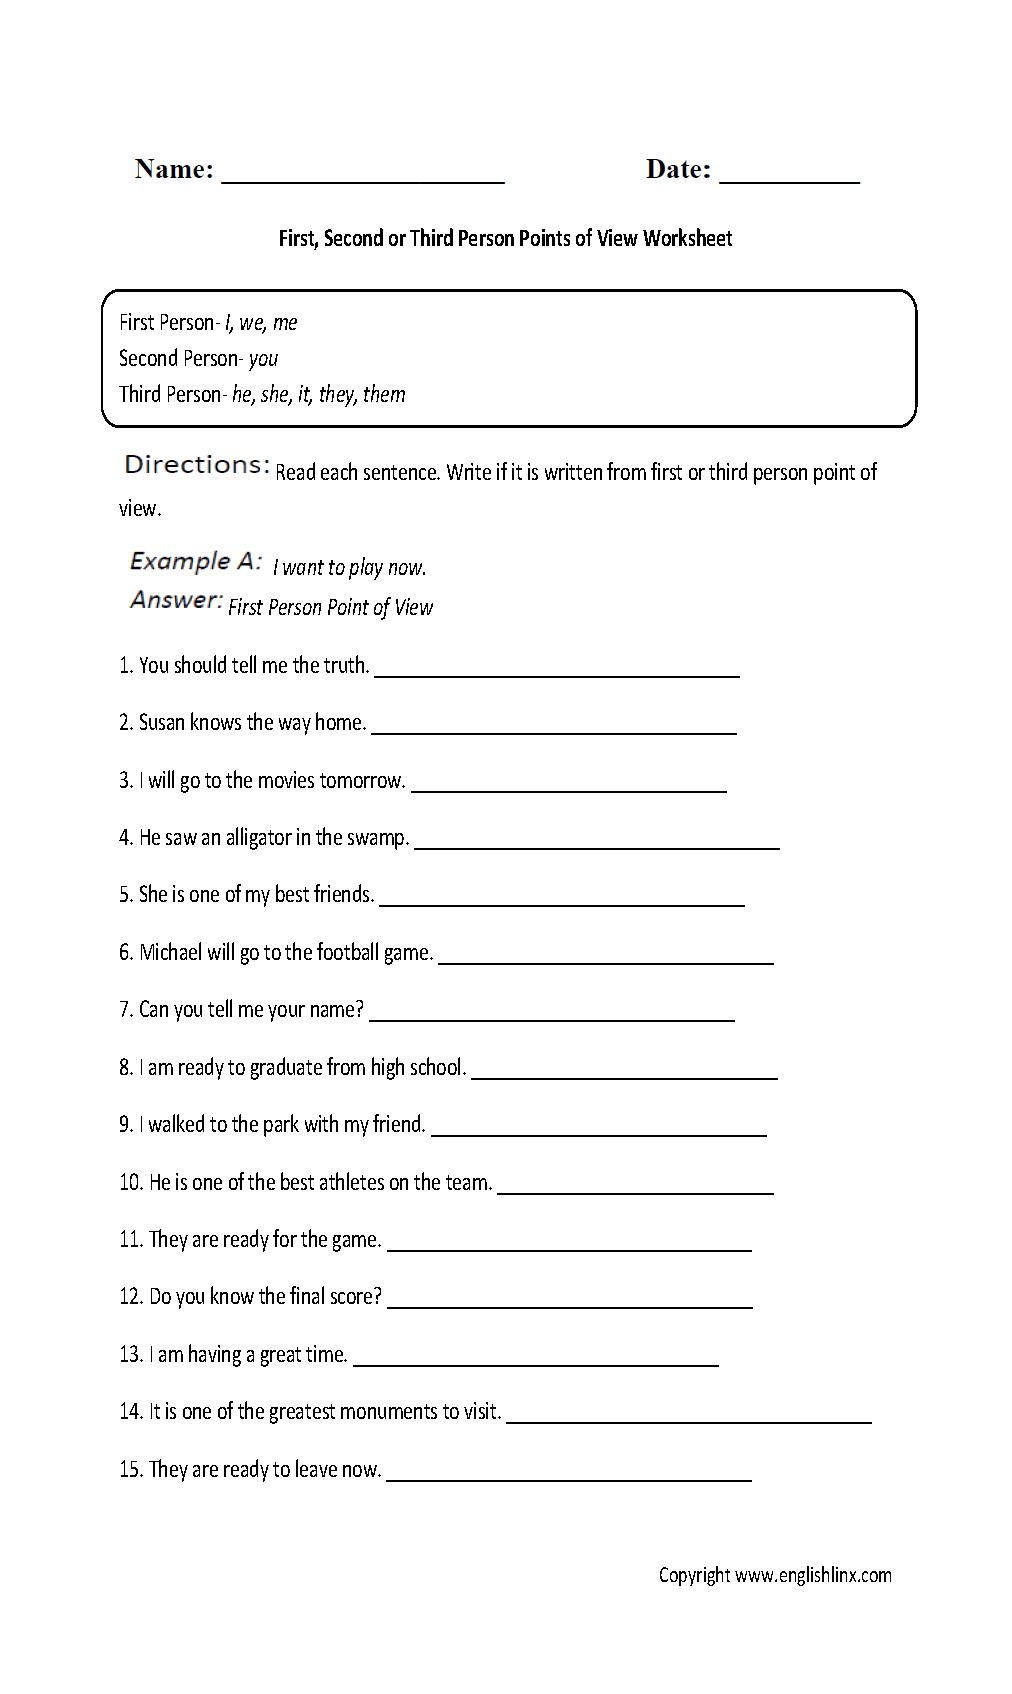 Weirdmailus  Unique Englishlinxcom  Point Of View Worksheets With Marvelous Point Of View Worksheet With Beauteous Integumentary System Worksheet Answers Also Plate Boundary Worksheet In Addition How To Merge Worksheets In Excel And Beginning Fractions Worksheets As Well As Reconstruction Worksheets Additionally Long Division Printable Worksheets From Englishlinxcom With Weirdmailus  Marvelous Englishlinxcom  Point Of View Worksheets With Beauteous Point Of View Worksheet And Unique Integumentary System Worksheet Answers Also Plate Boundary Worksheet In Addition How To Merge Worksheets In Excel From Englishlinxcom